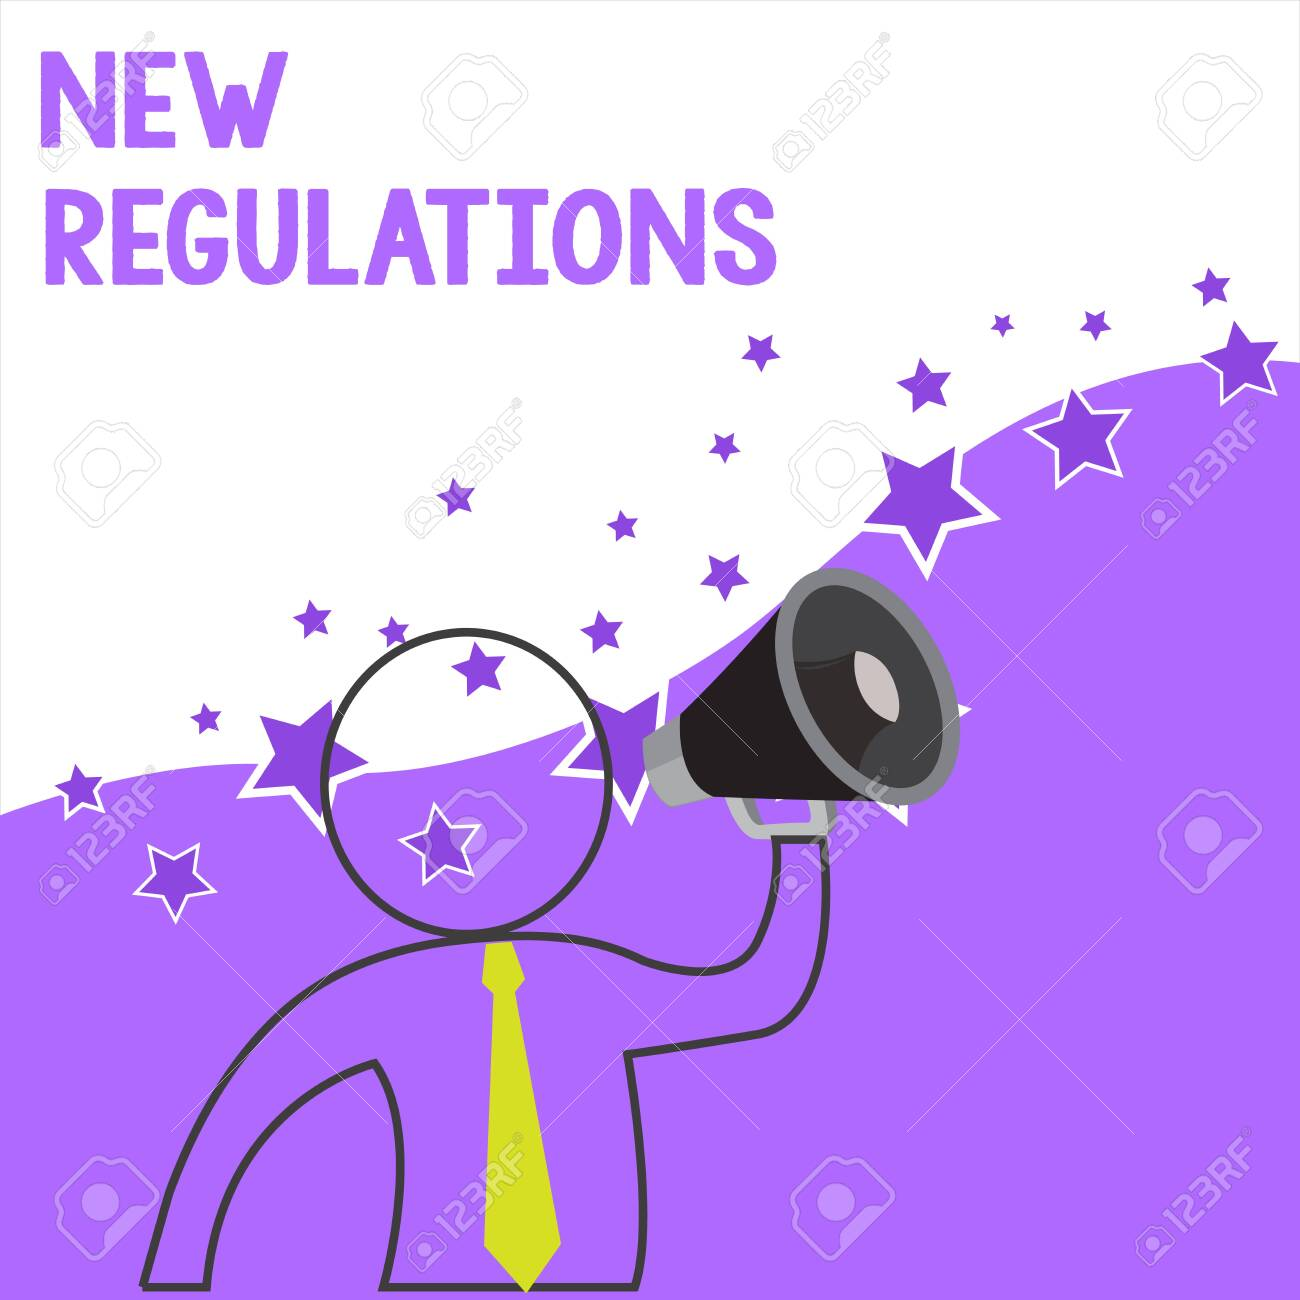 Text sign showing New Regulations. Business photo showcasing Regulation controlling the activity usually used by rules. Outline Symbol Man Loudspeaker Making Announcement Giving Instructions - 124906116